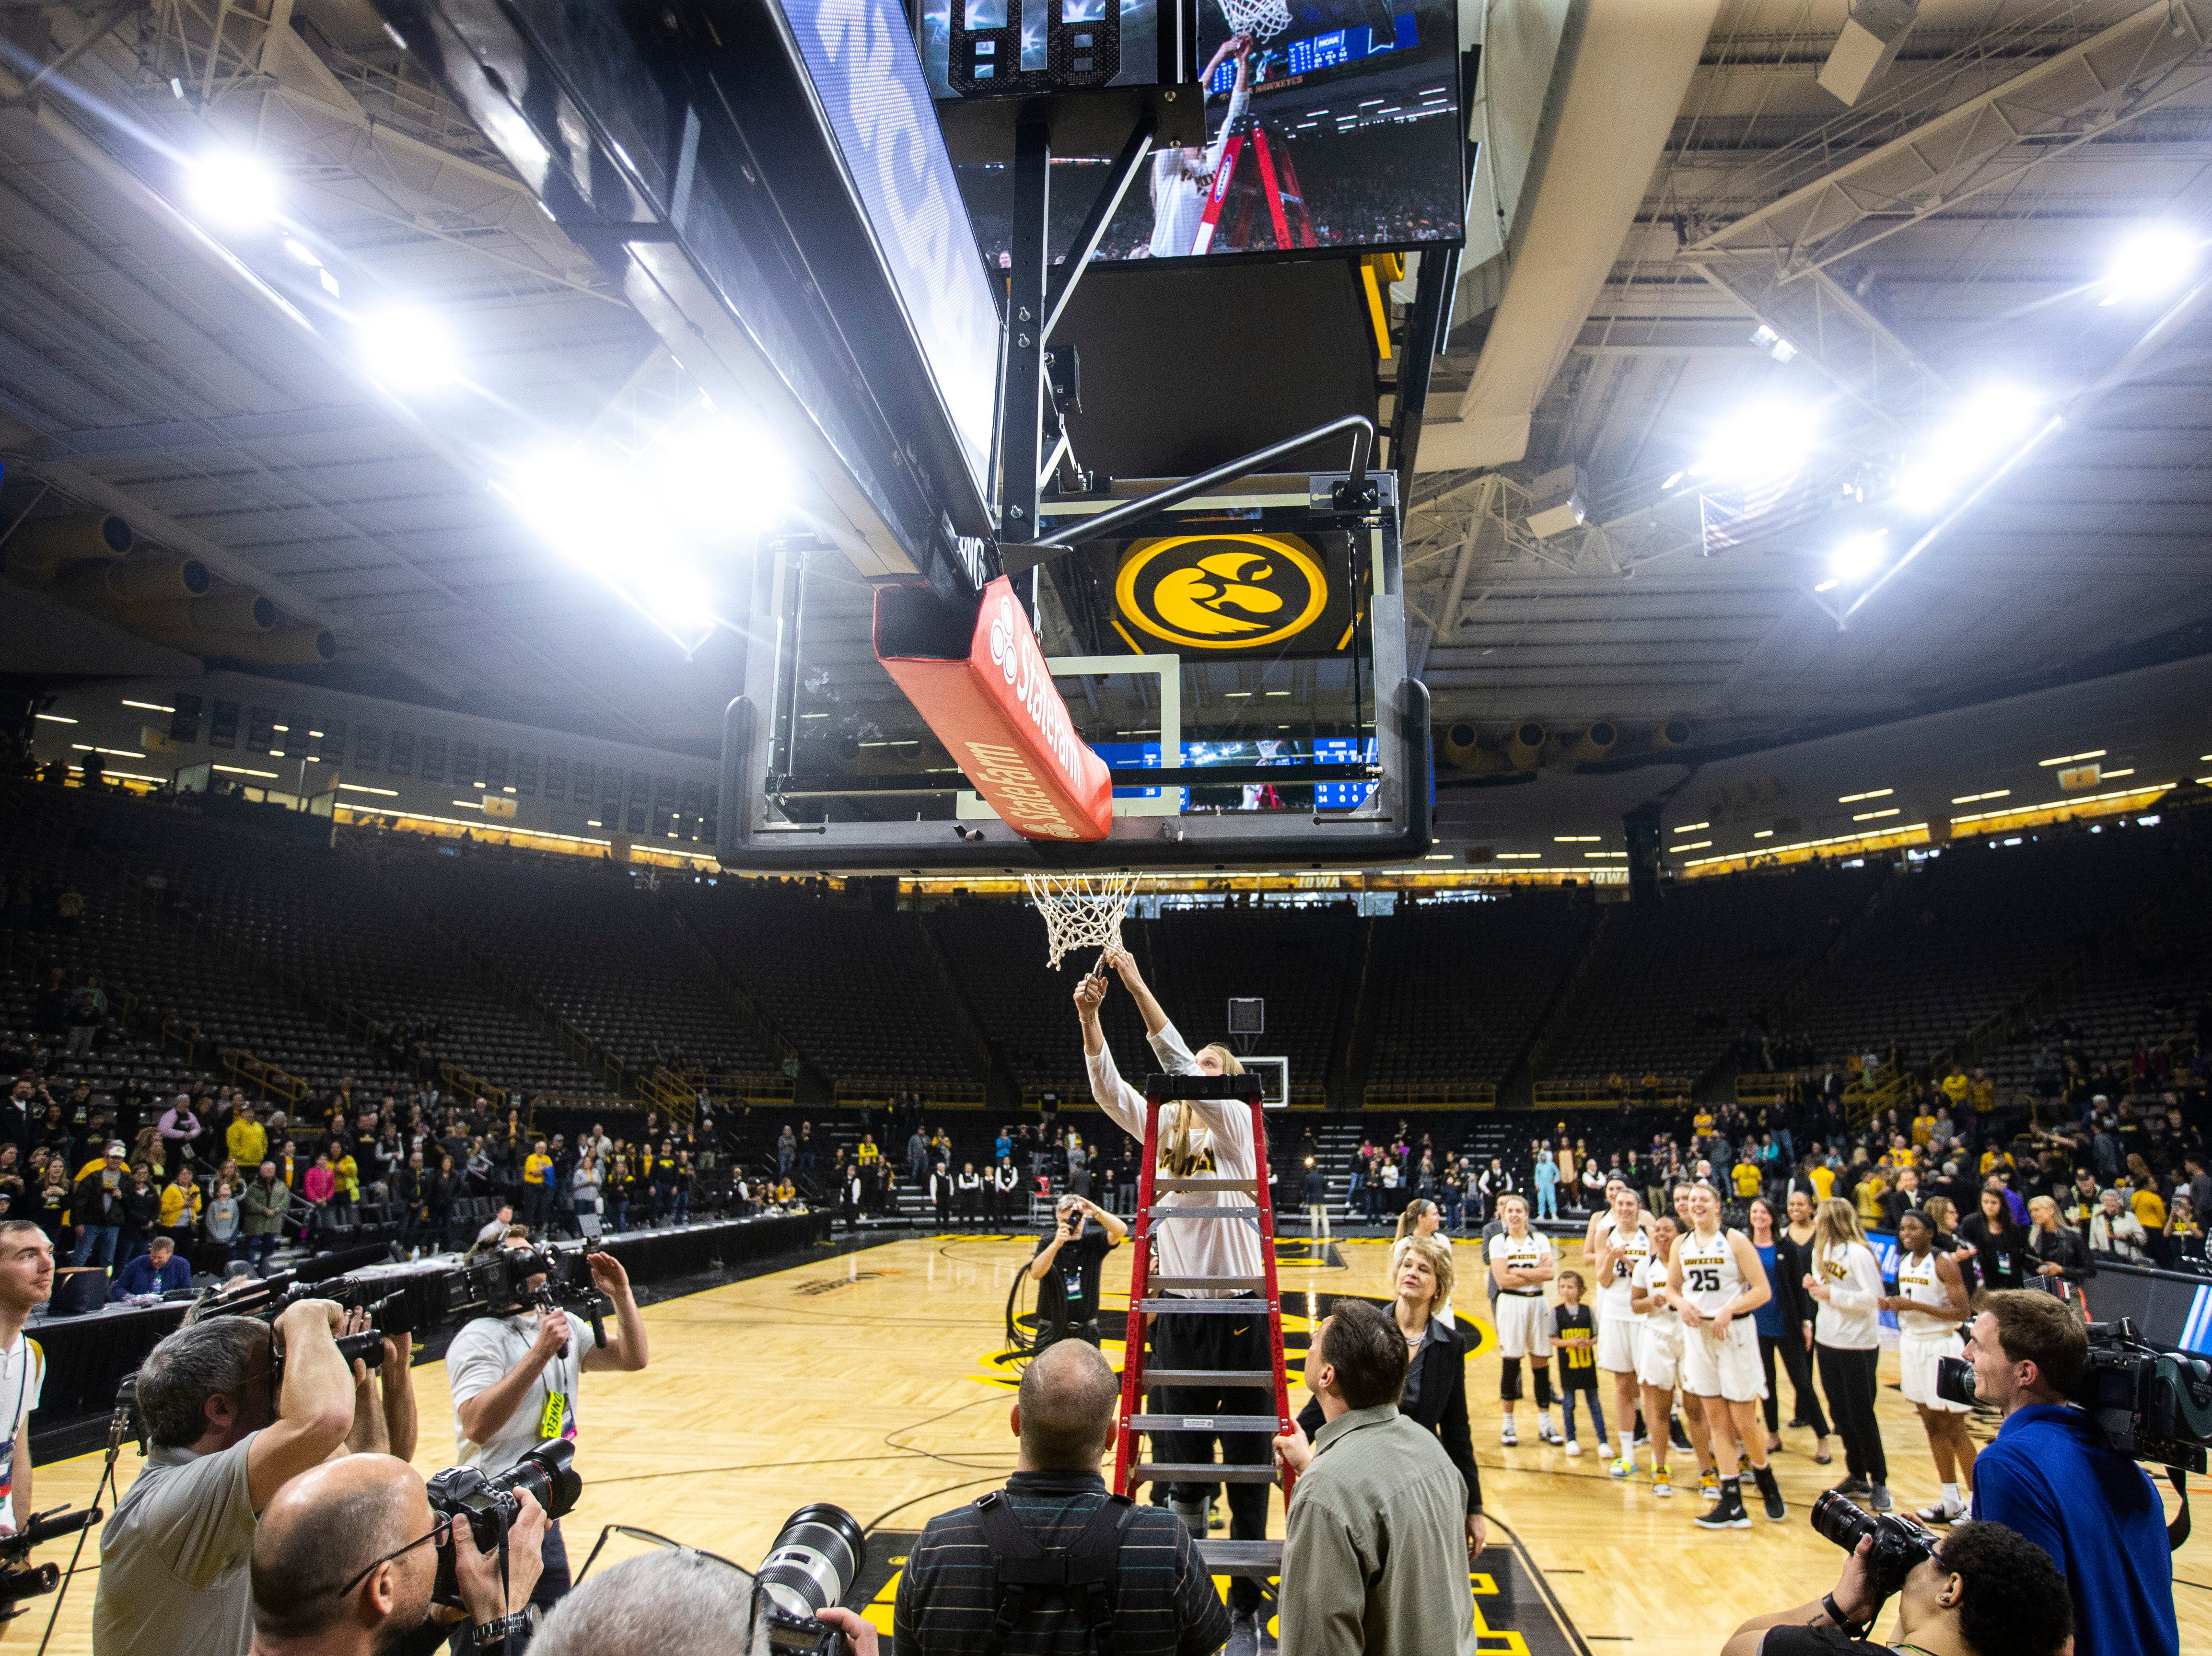 Iowa forward Logan Cook (23) cuts down the nets on the court after a NCAA women's basketball tournament second-round game, Sunday, March 24, 2019, at Carver-Hawkeye Arena in Iowa City, Iowa.